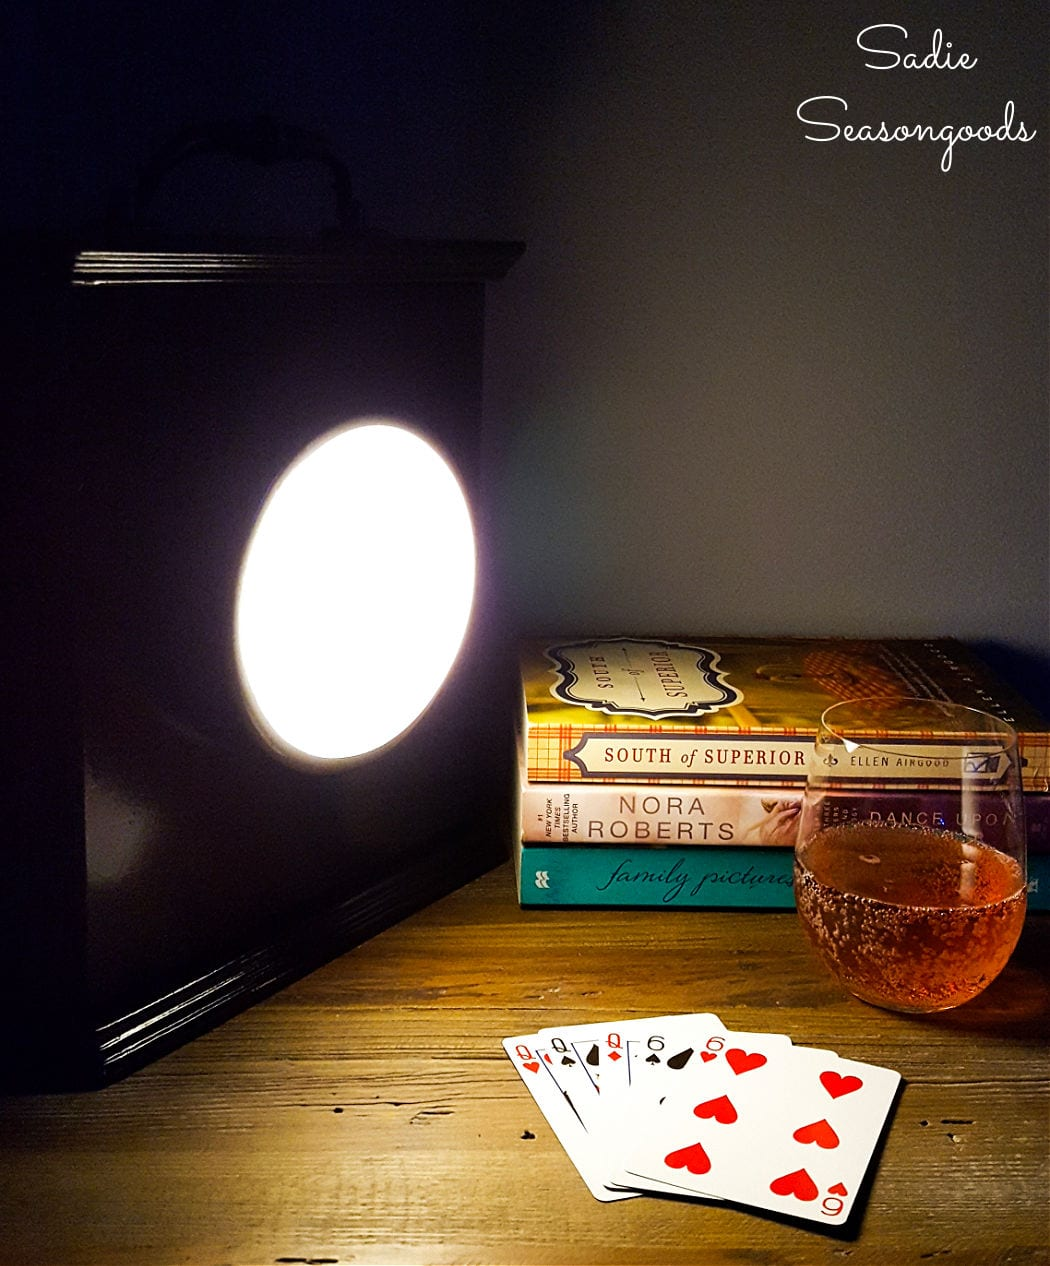 power outage kit with emergency lantern